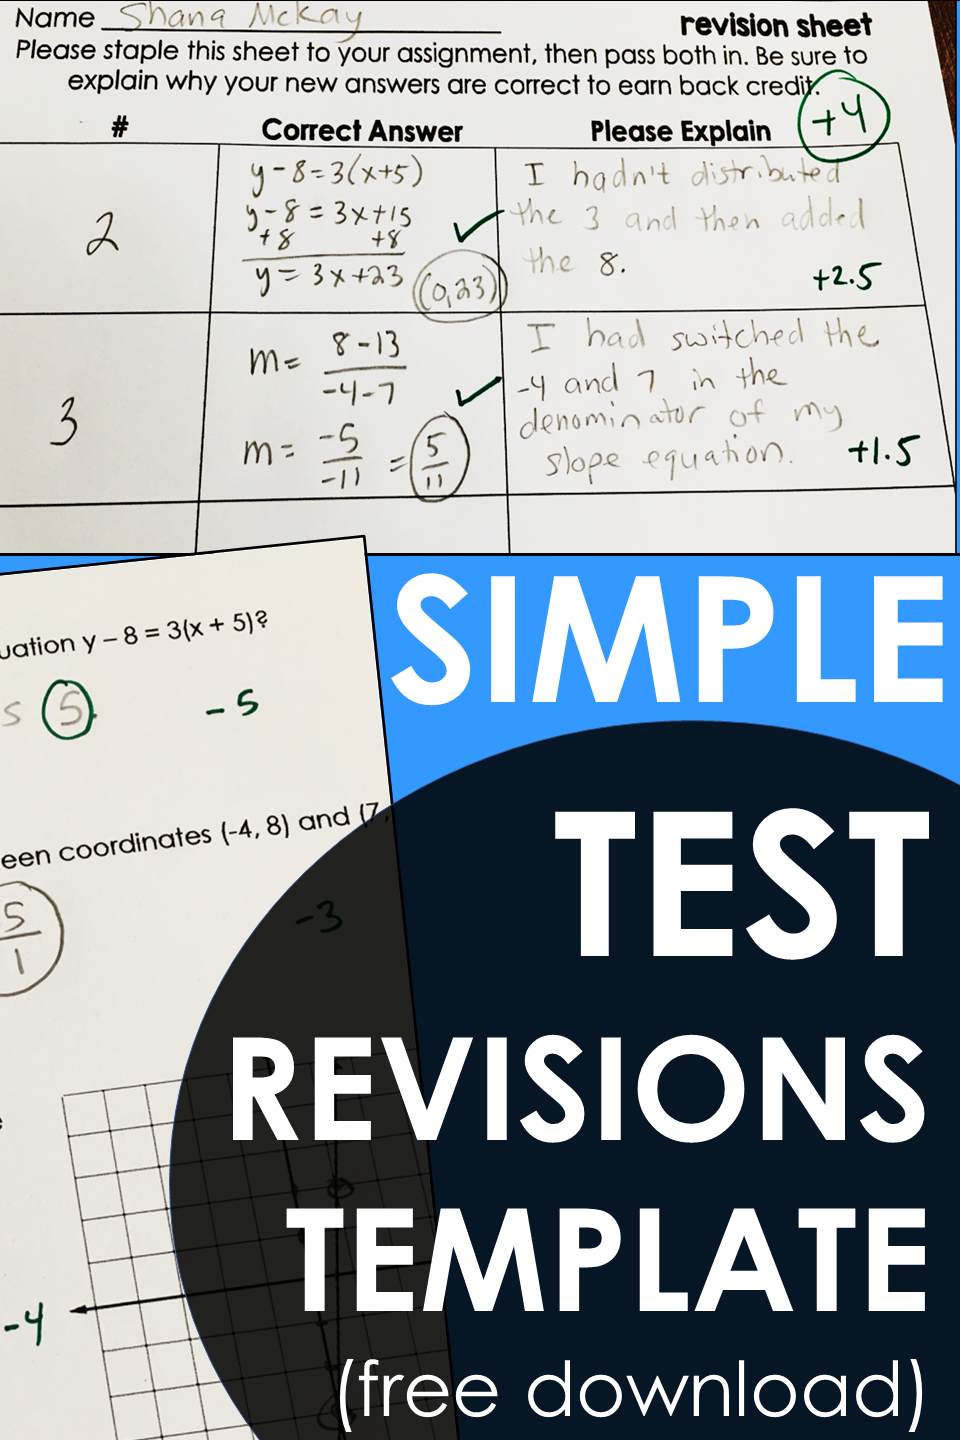 Simple math test corrections template for students to reflect on